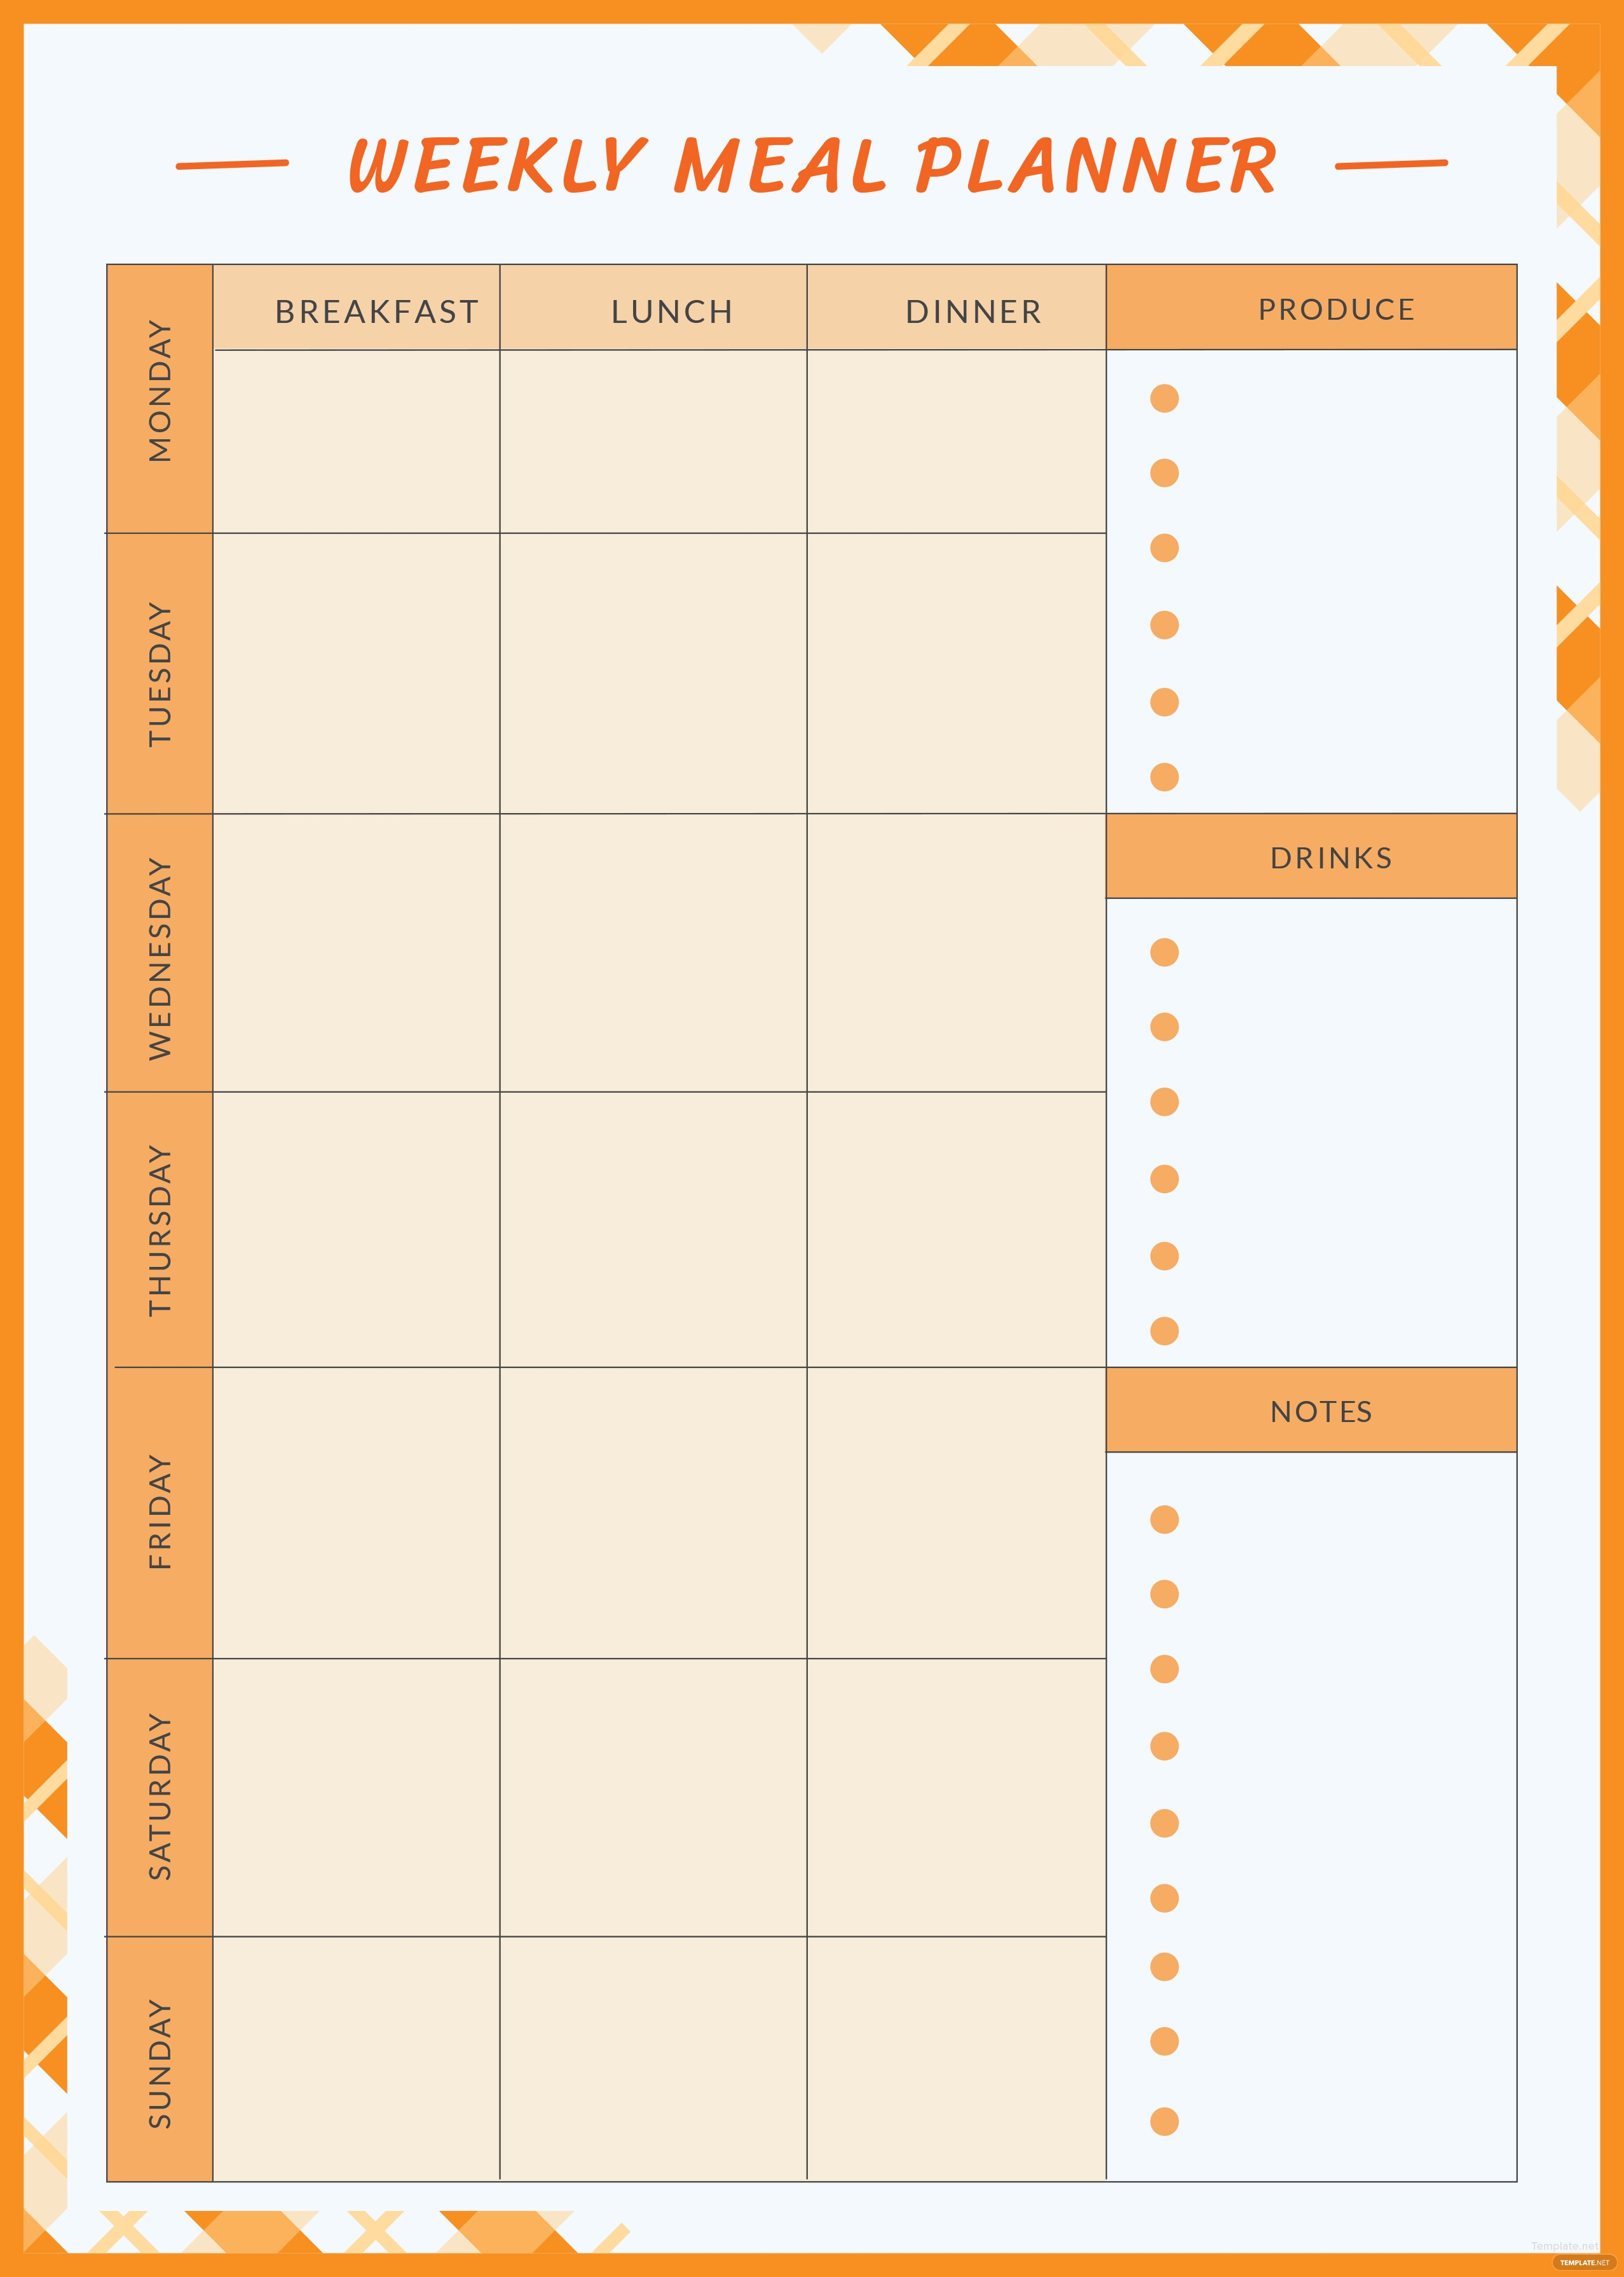 click to see full template weekly meal planner template free download